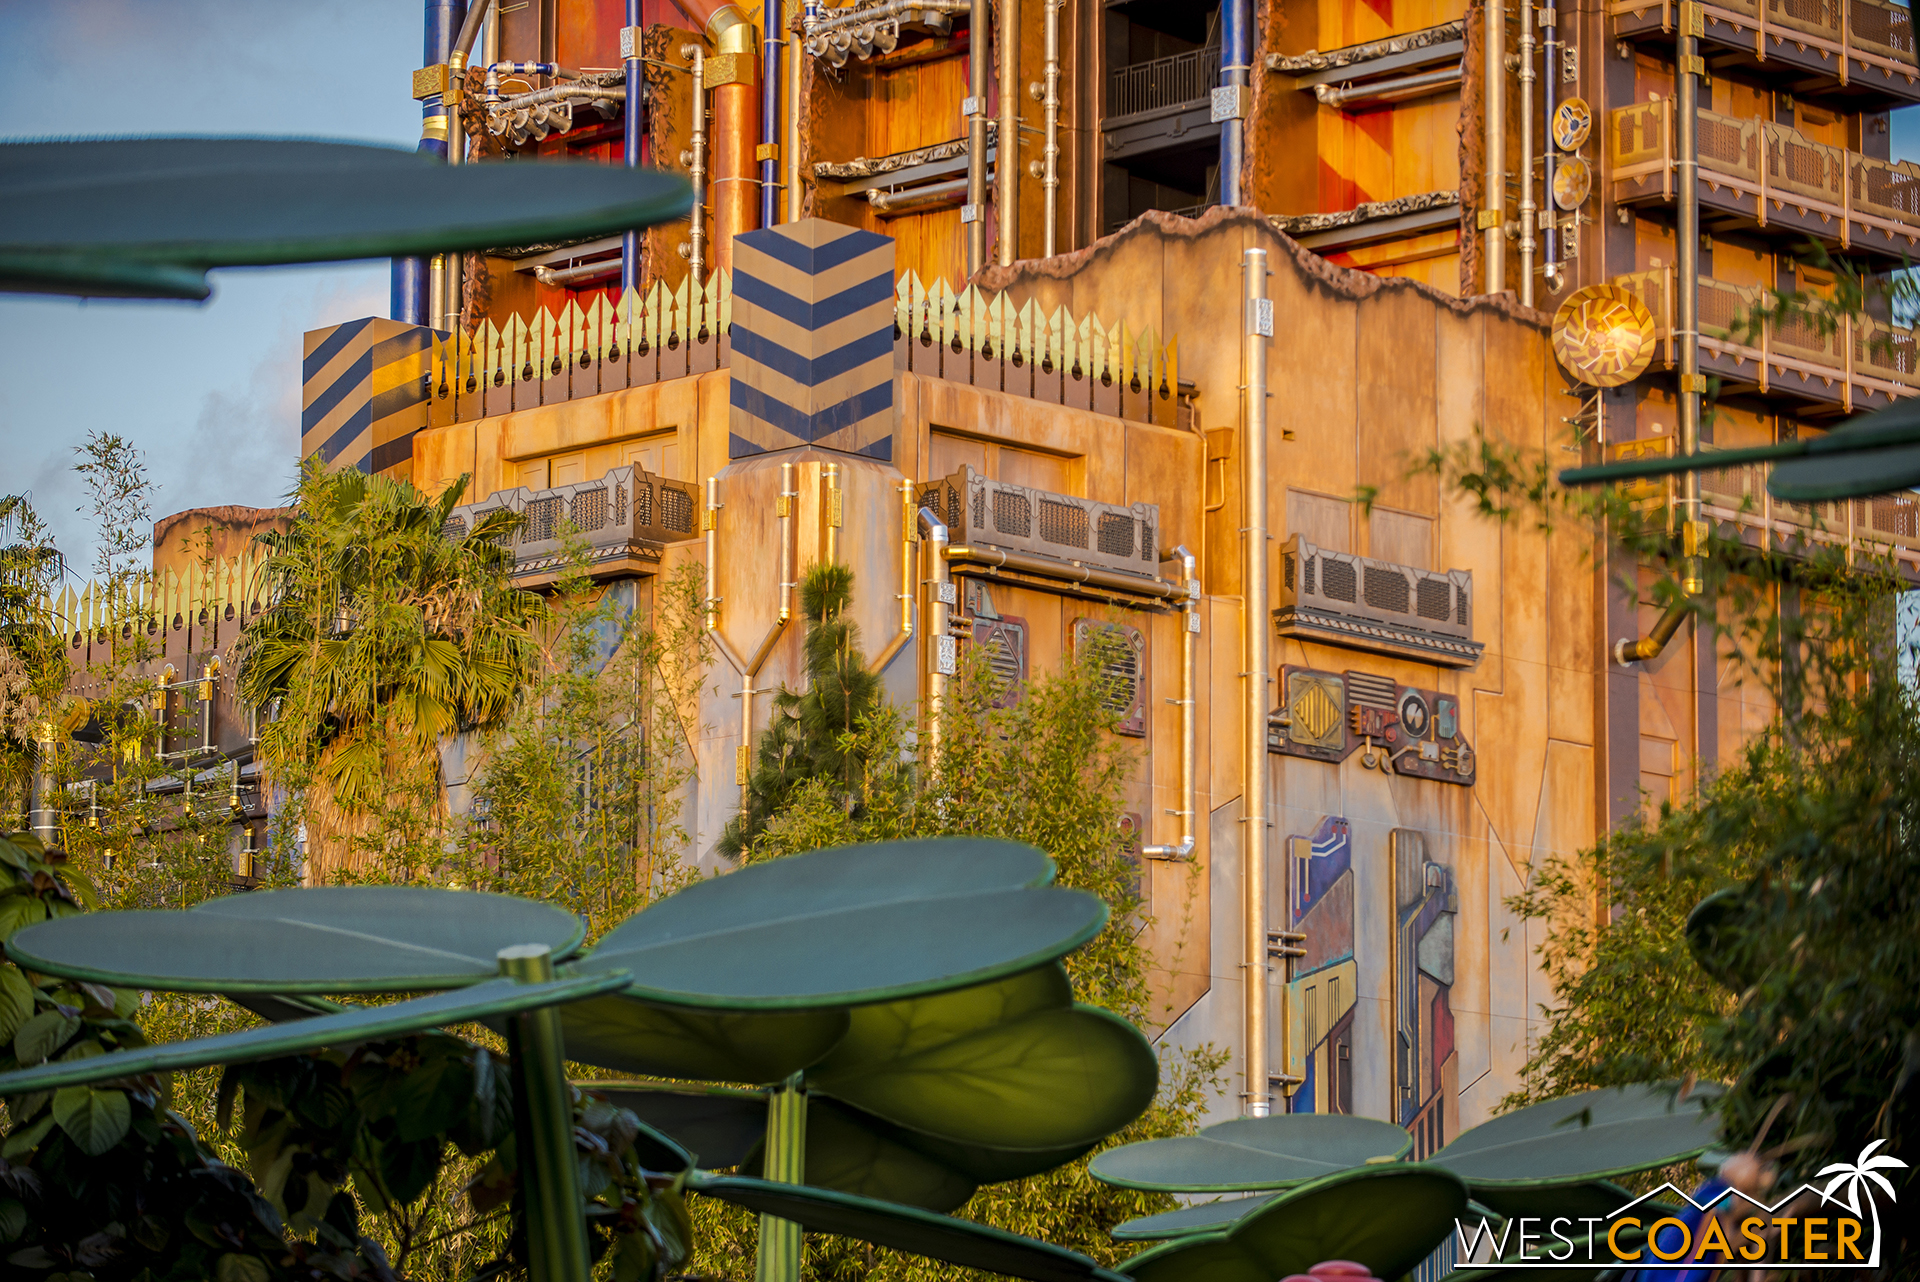 Over on the Bug's Land side, they've added these nifty caution stripes to warn guests not to look at the tower too closely, lest their eyeballs explode from the over-the-top exterior theming and render their eye holes smoldering ruins of chromatic diarrhea.